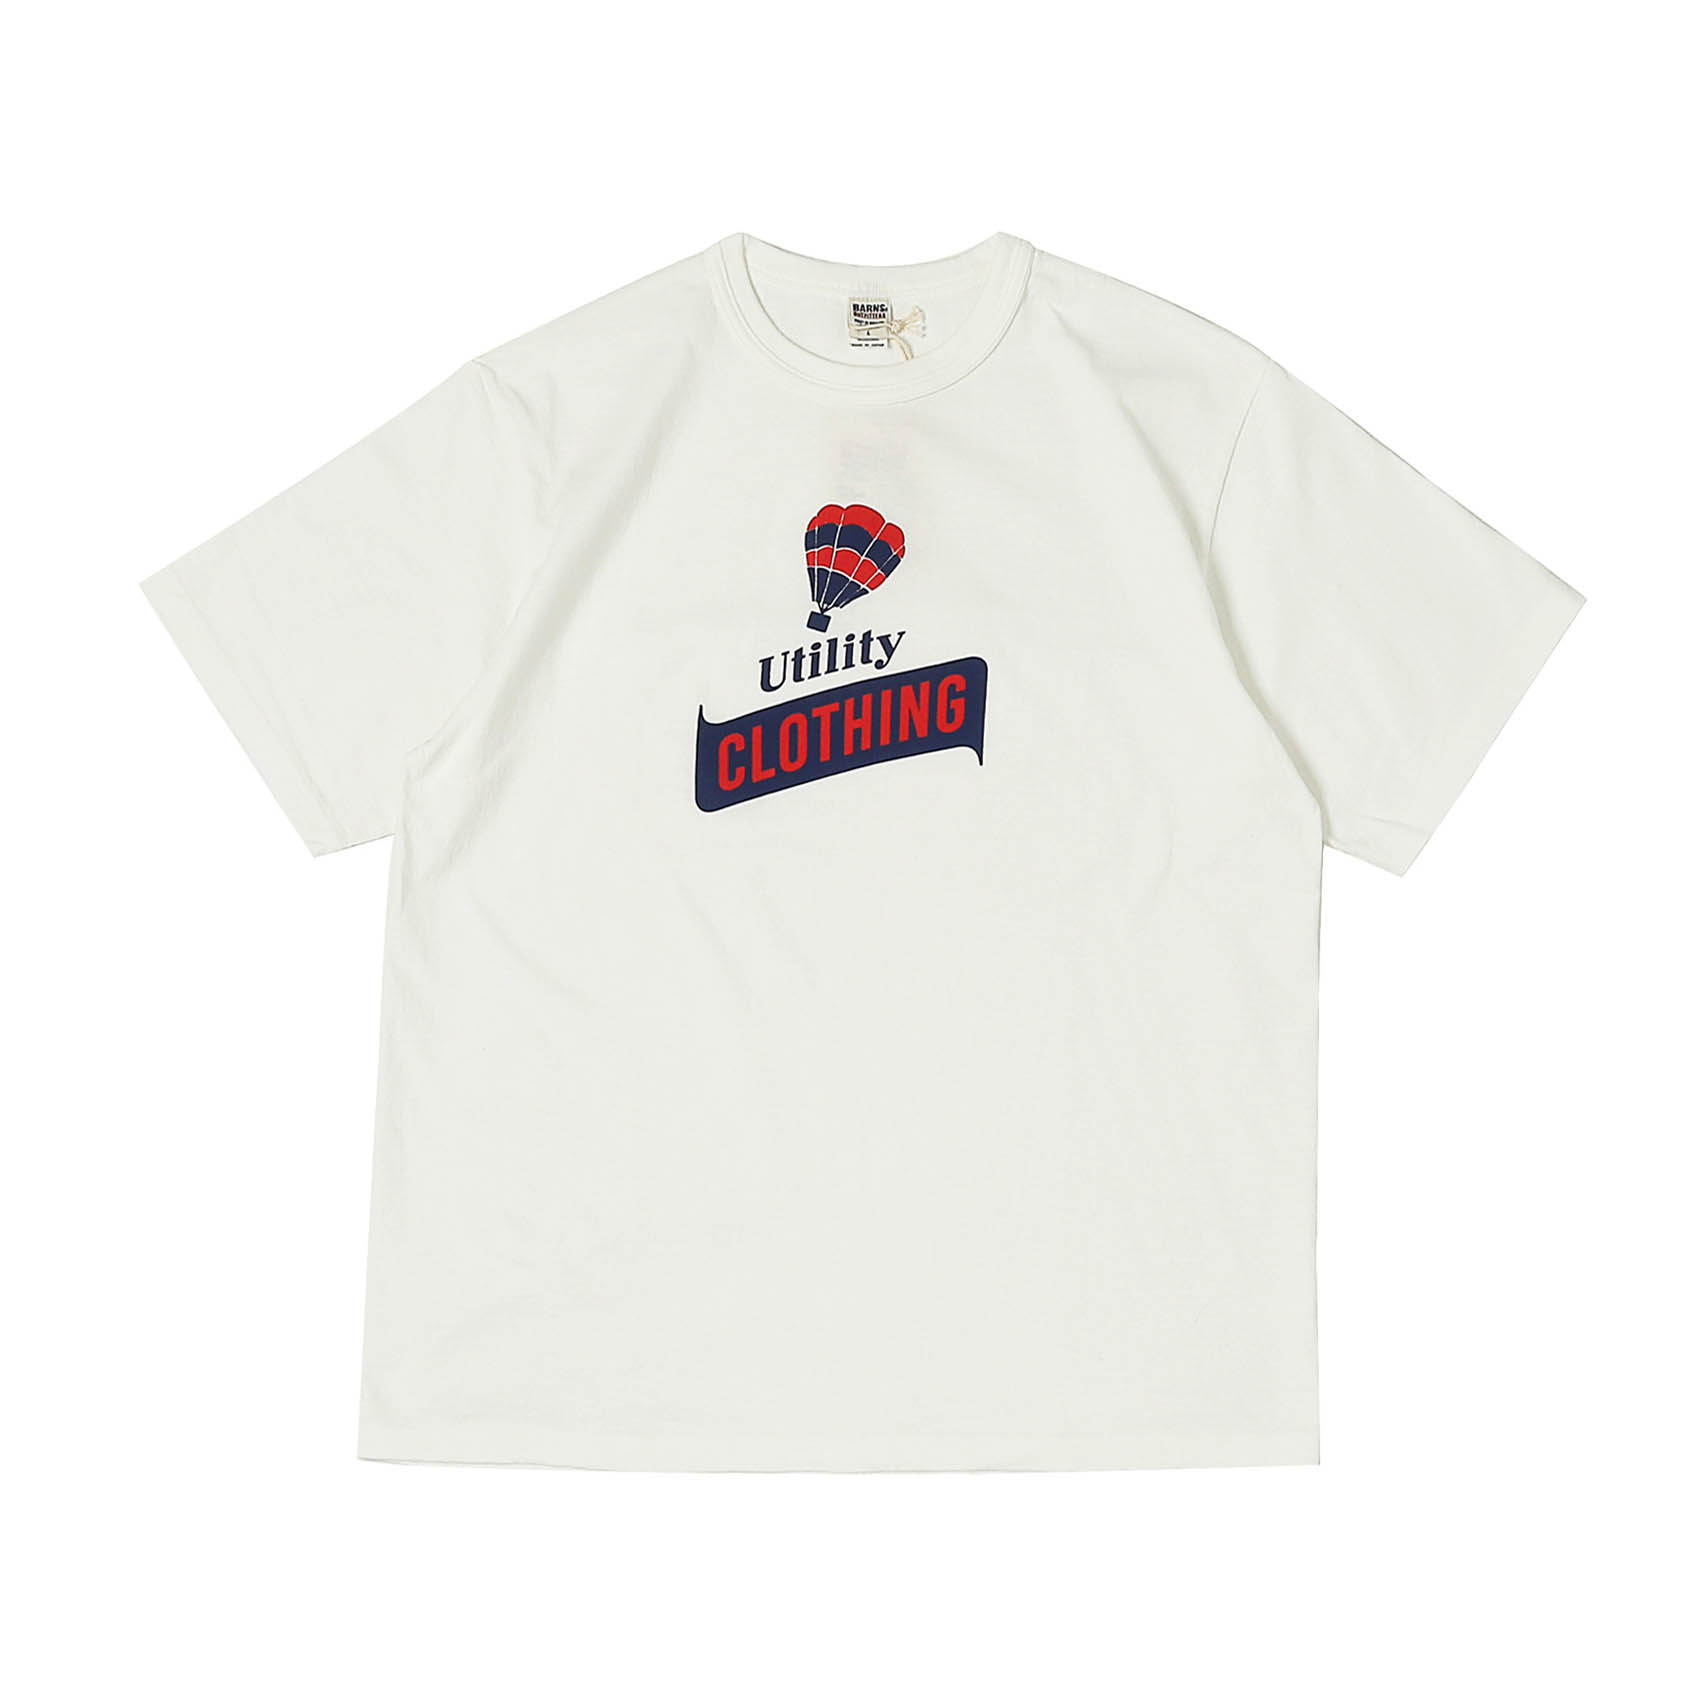 S/S PRINTED TEE - UTILITY CLOTHING